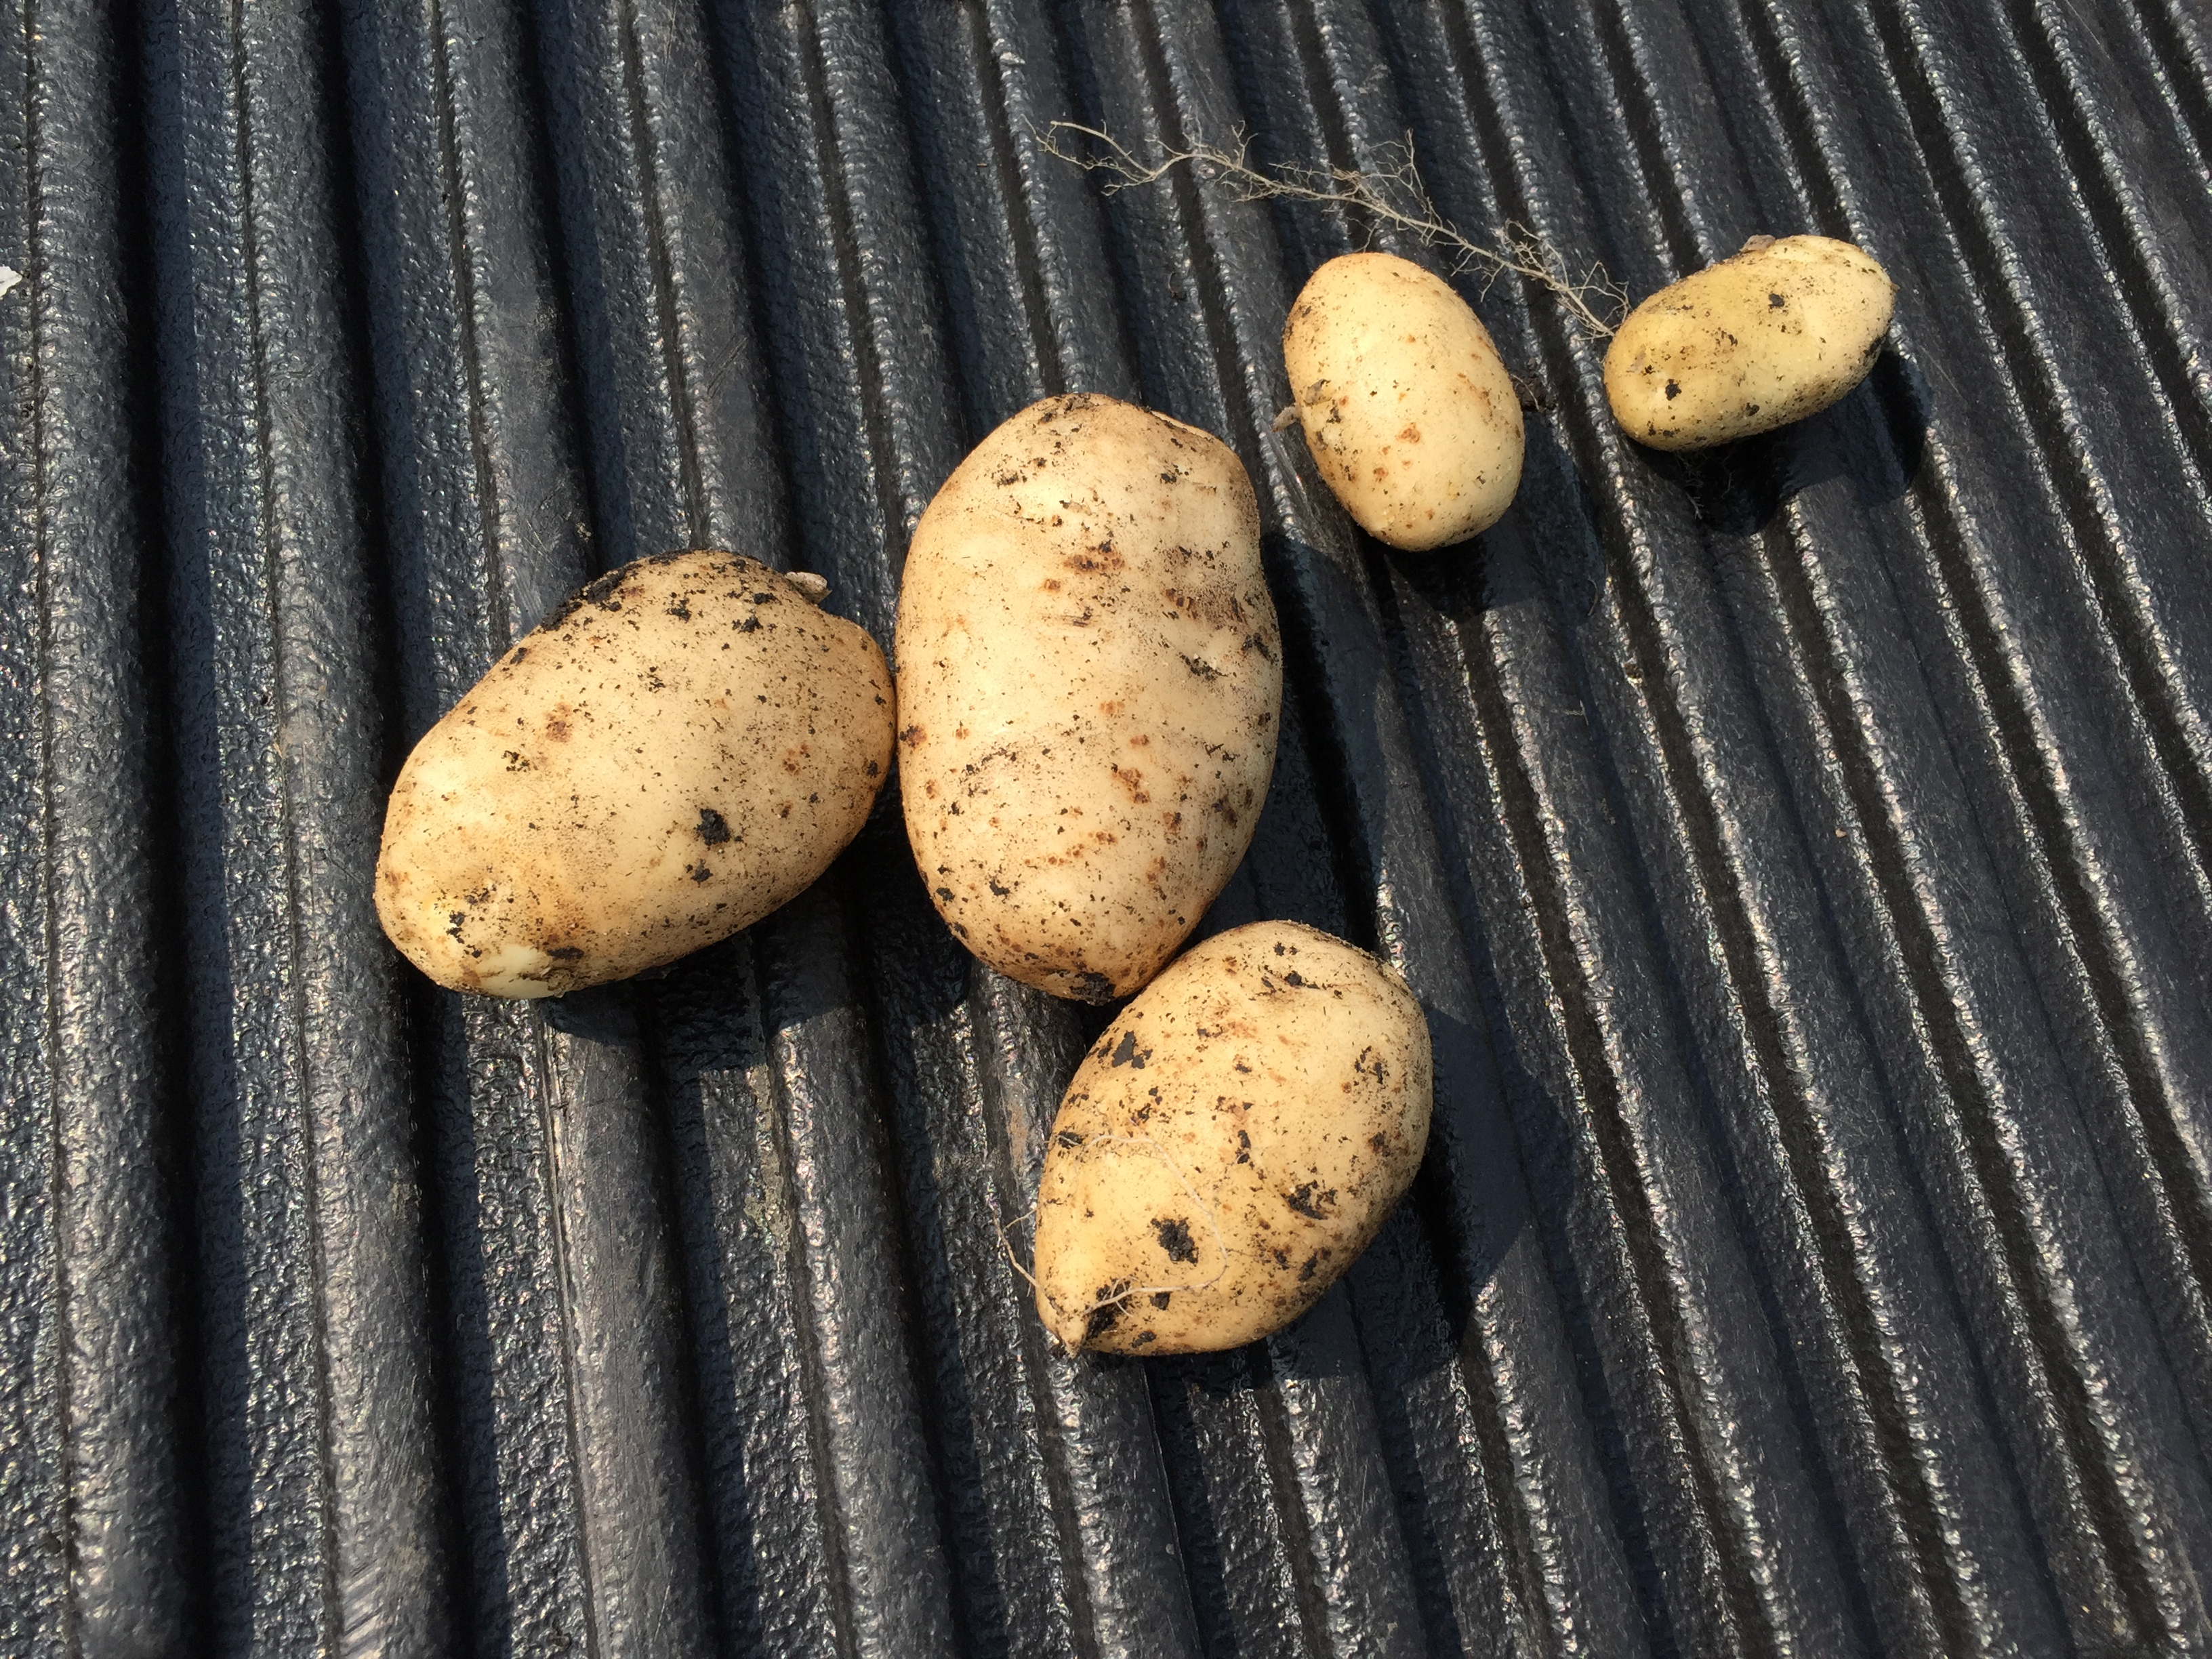 Potatoes! The larges is about the same diameter as a golf ball and about 3 inches long.